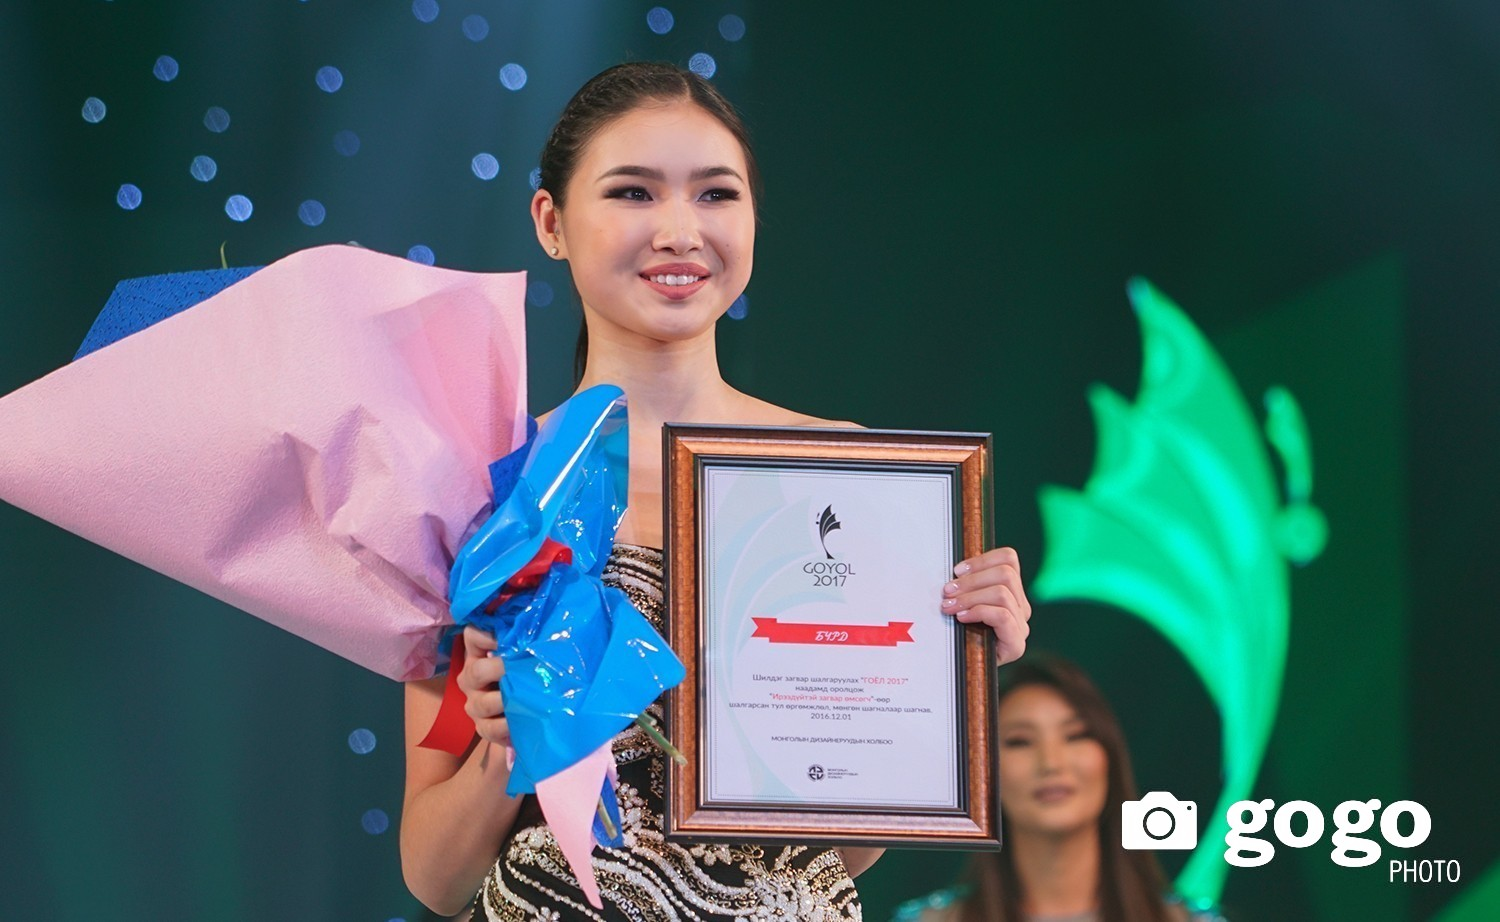 Best Young Model award went to G.Burd